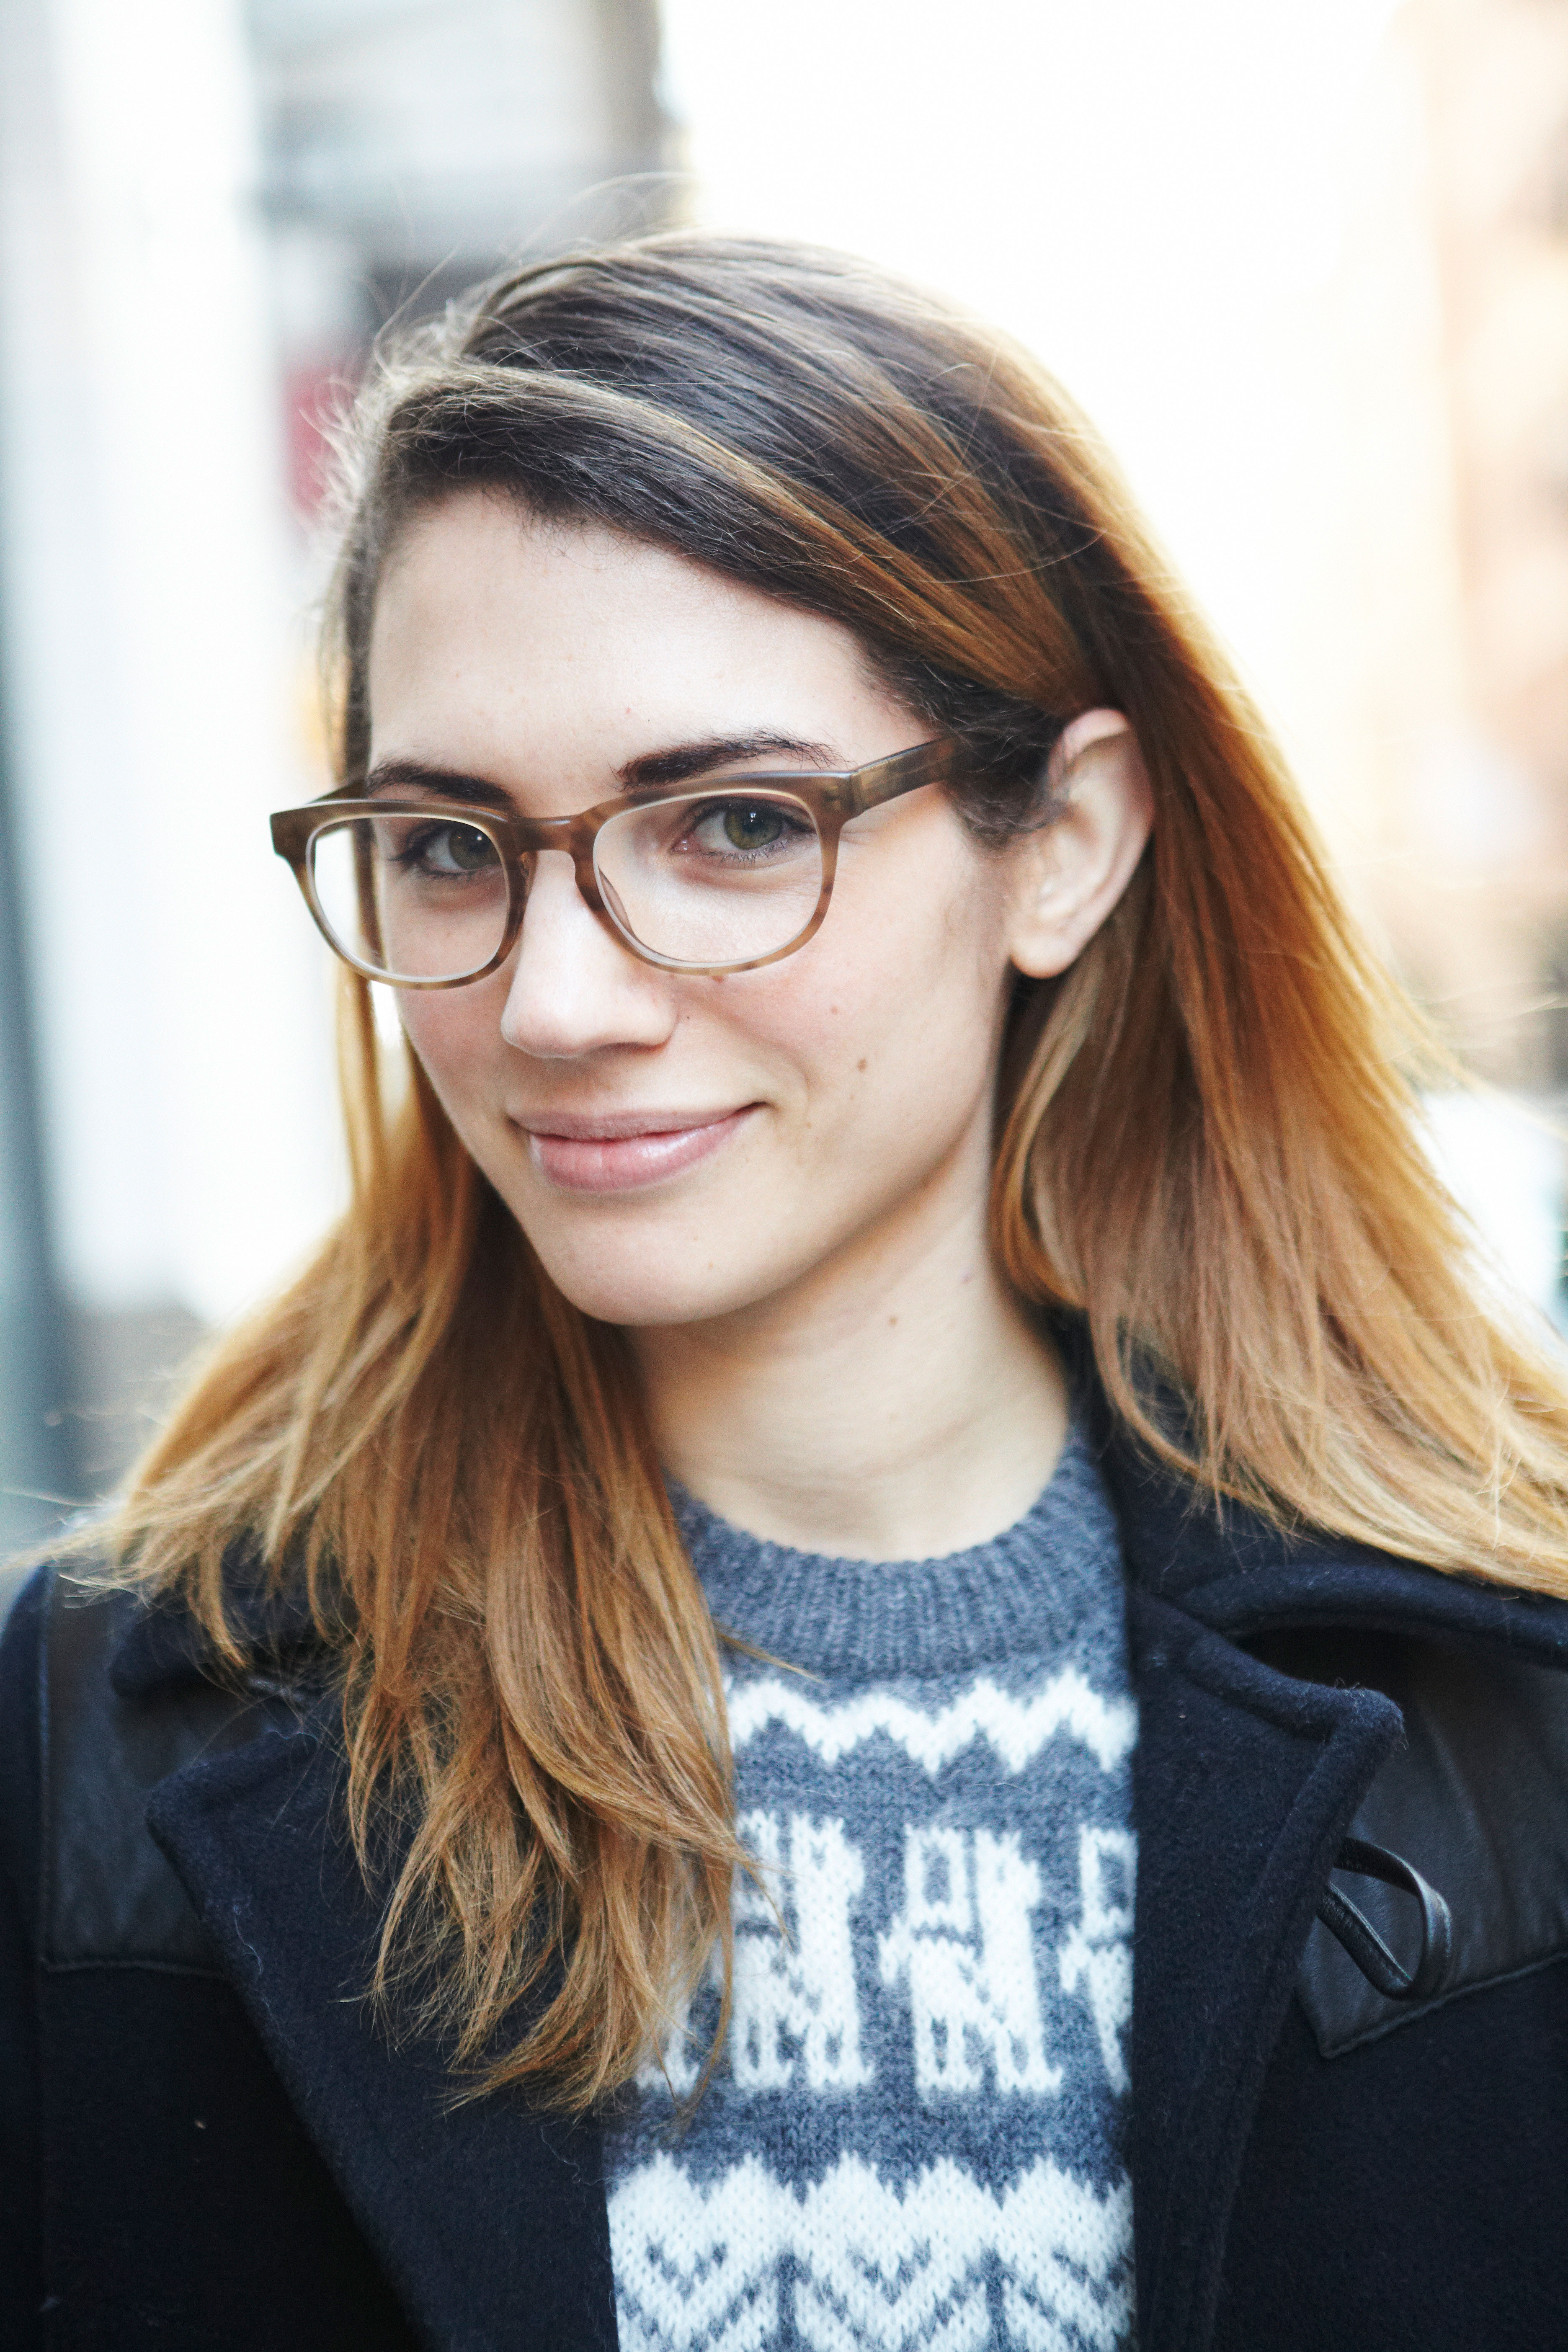 latest trend in eyeglasses  Eyeglasses Trend For 2014 Fall